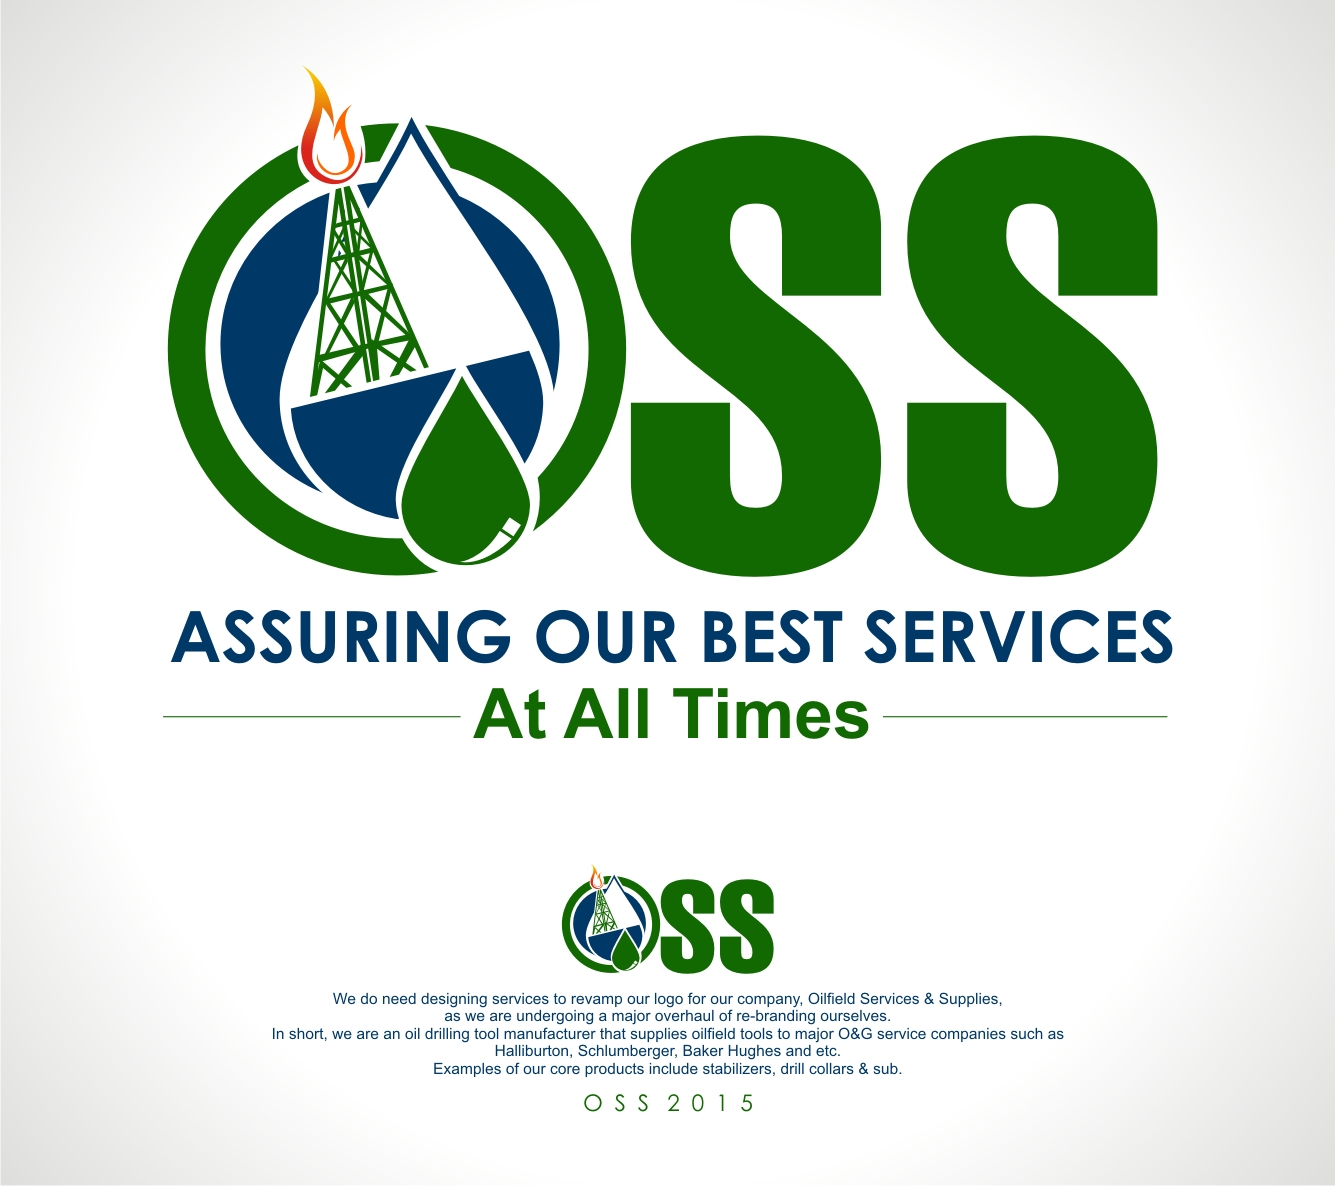 Professional traditional logo design for oilfield services logo design by esolz technologies for oss project re branding logo revamp oil spiritdancerdesigns Choice Image